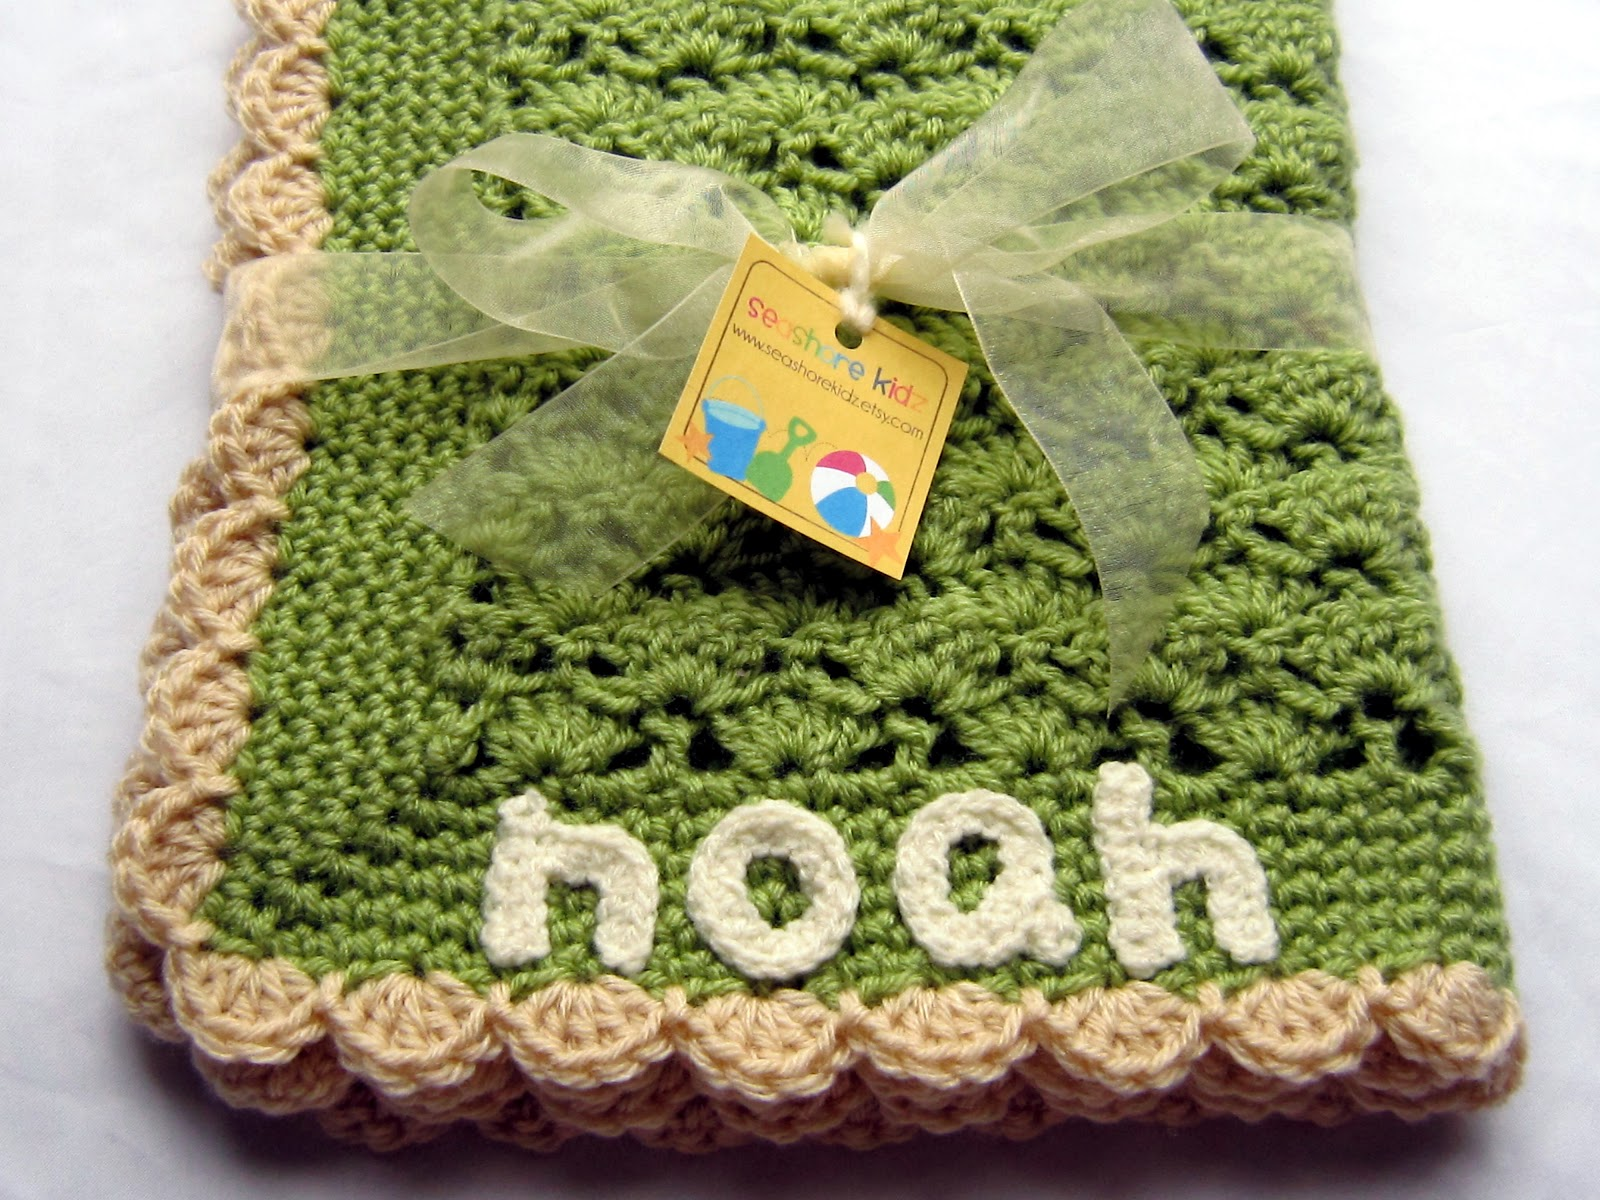 Crocheting Names On Blankets : With that said, Ill venture back into the baby crochet world for a ...